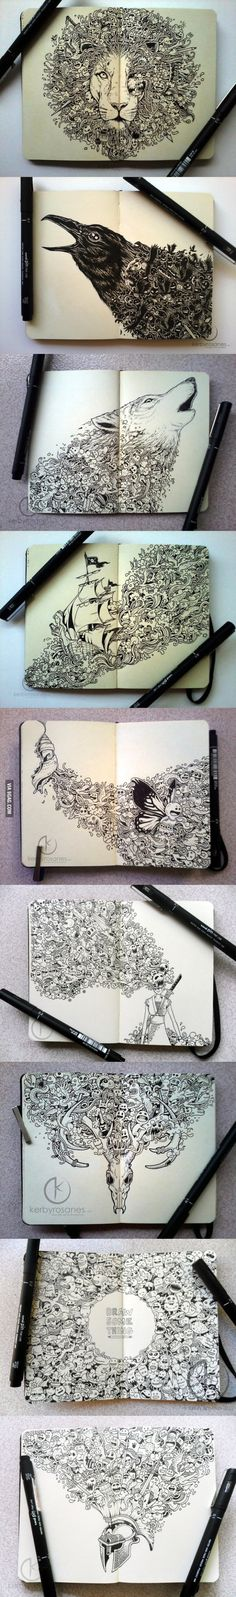 Incredible Moleskin drawings by Kerby Rosanes